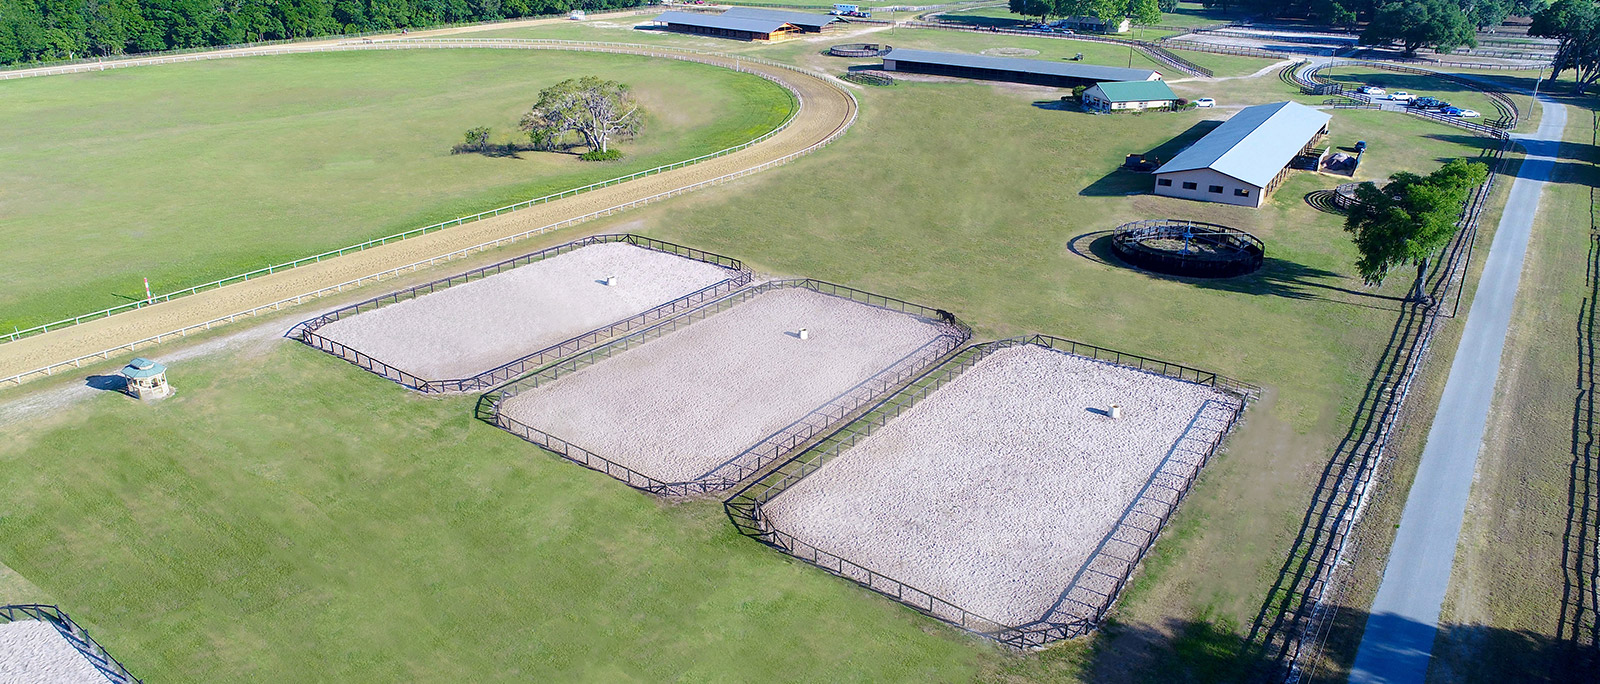 An aerial view of the facility